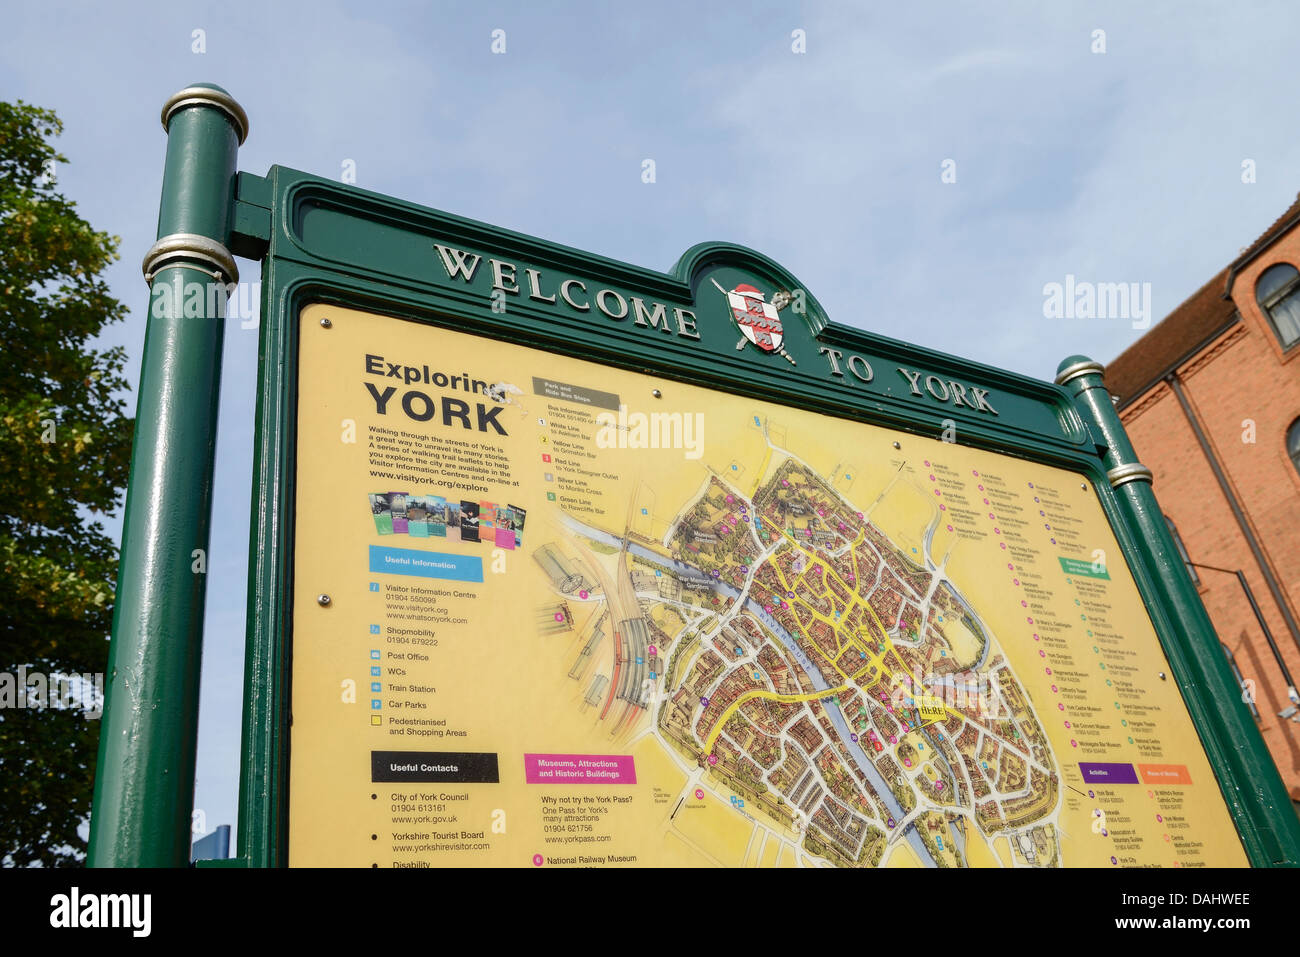 Welcome to York sign and map in York city centre UK - Stock Image